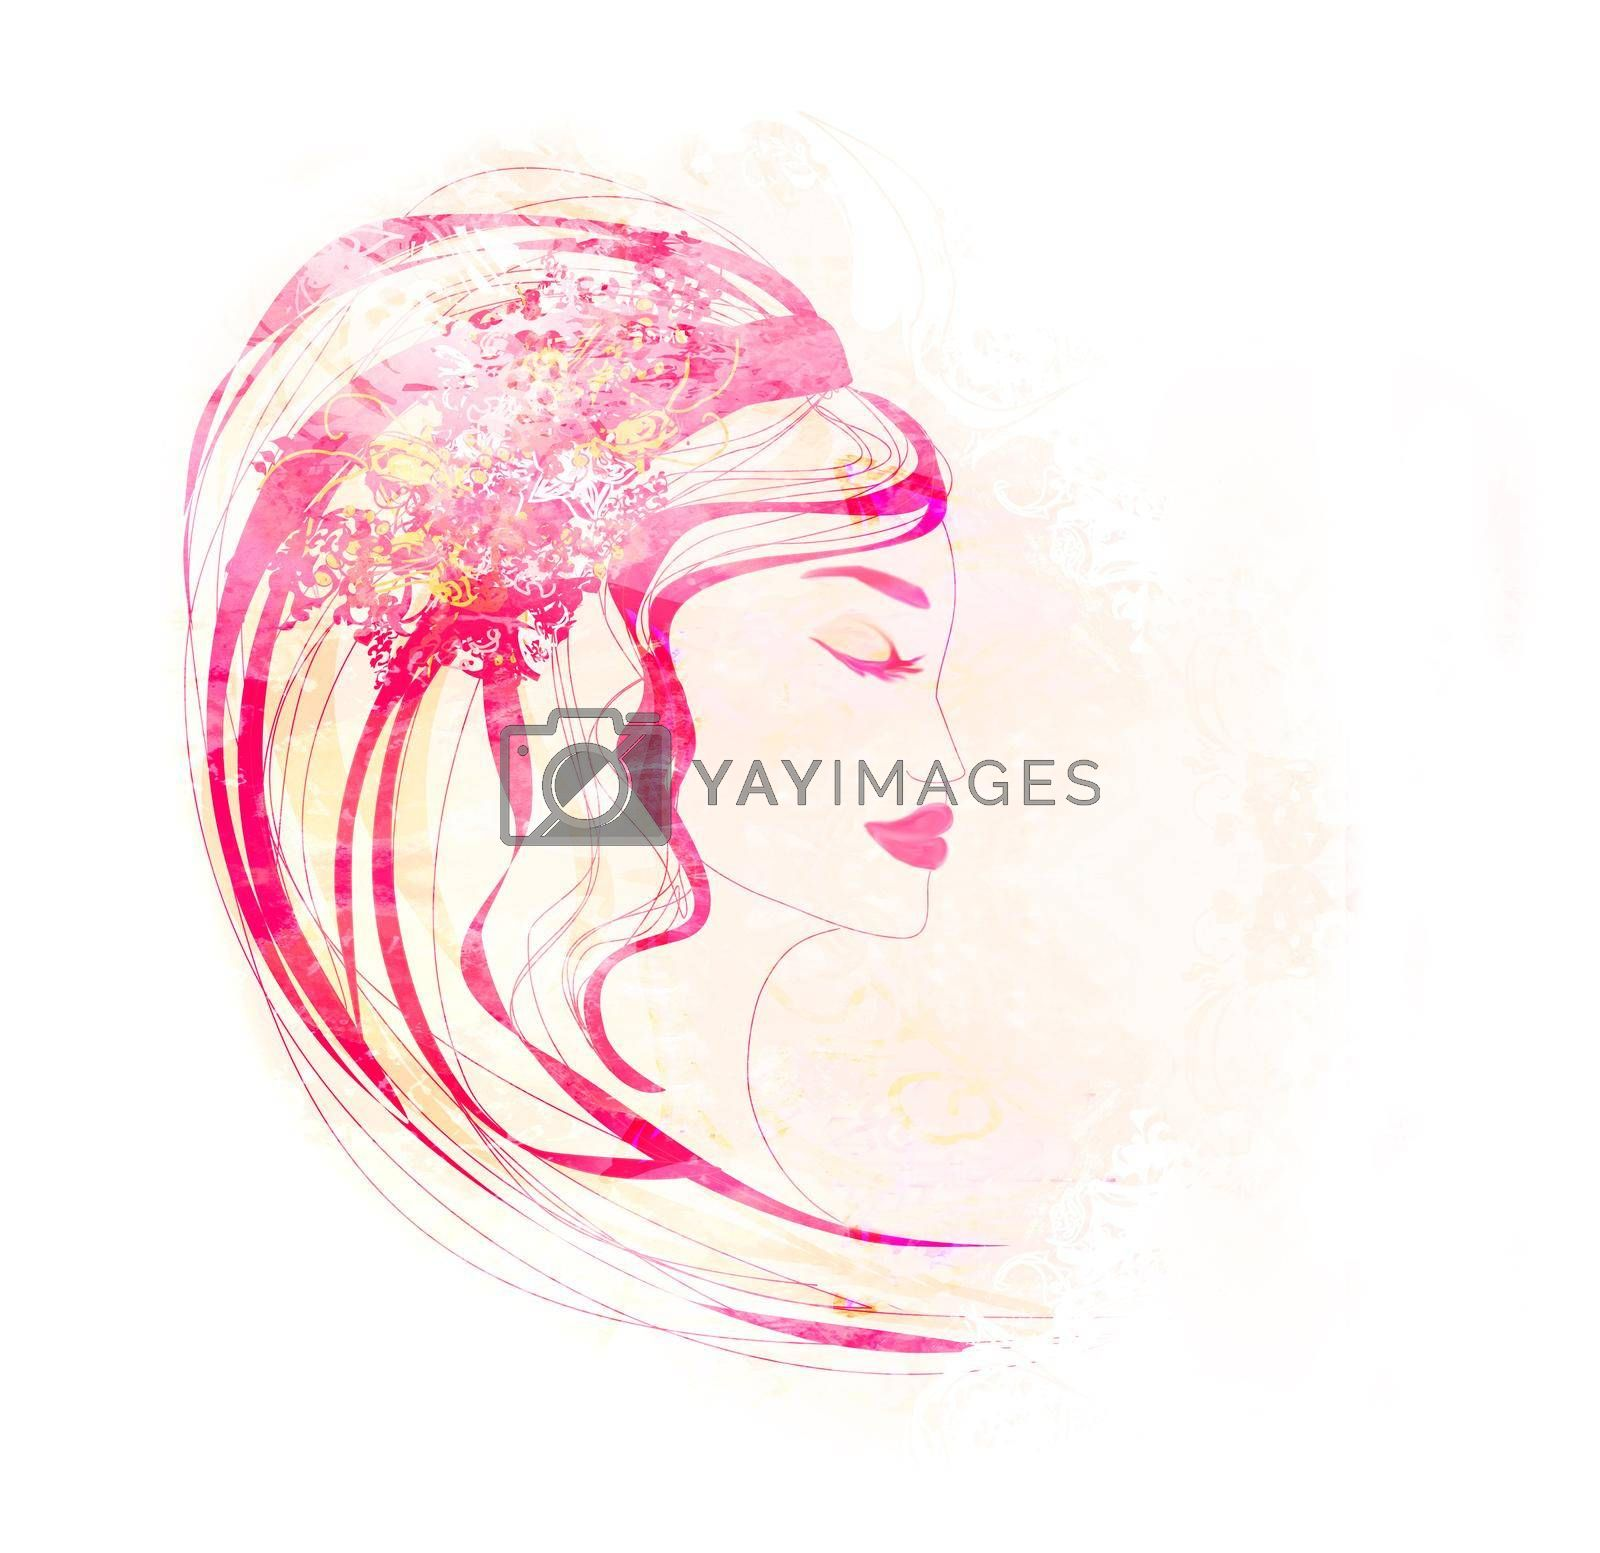 Royalty free image of Decorative Abstract Lady Face Poster  by JackyBrown